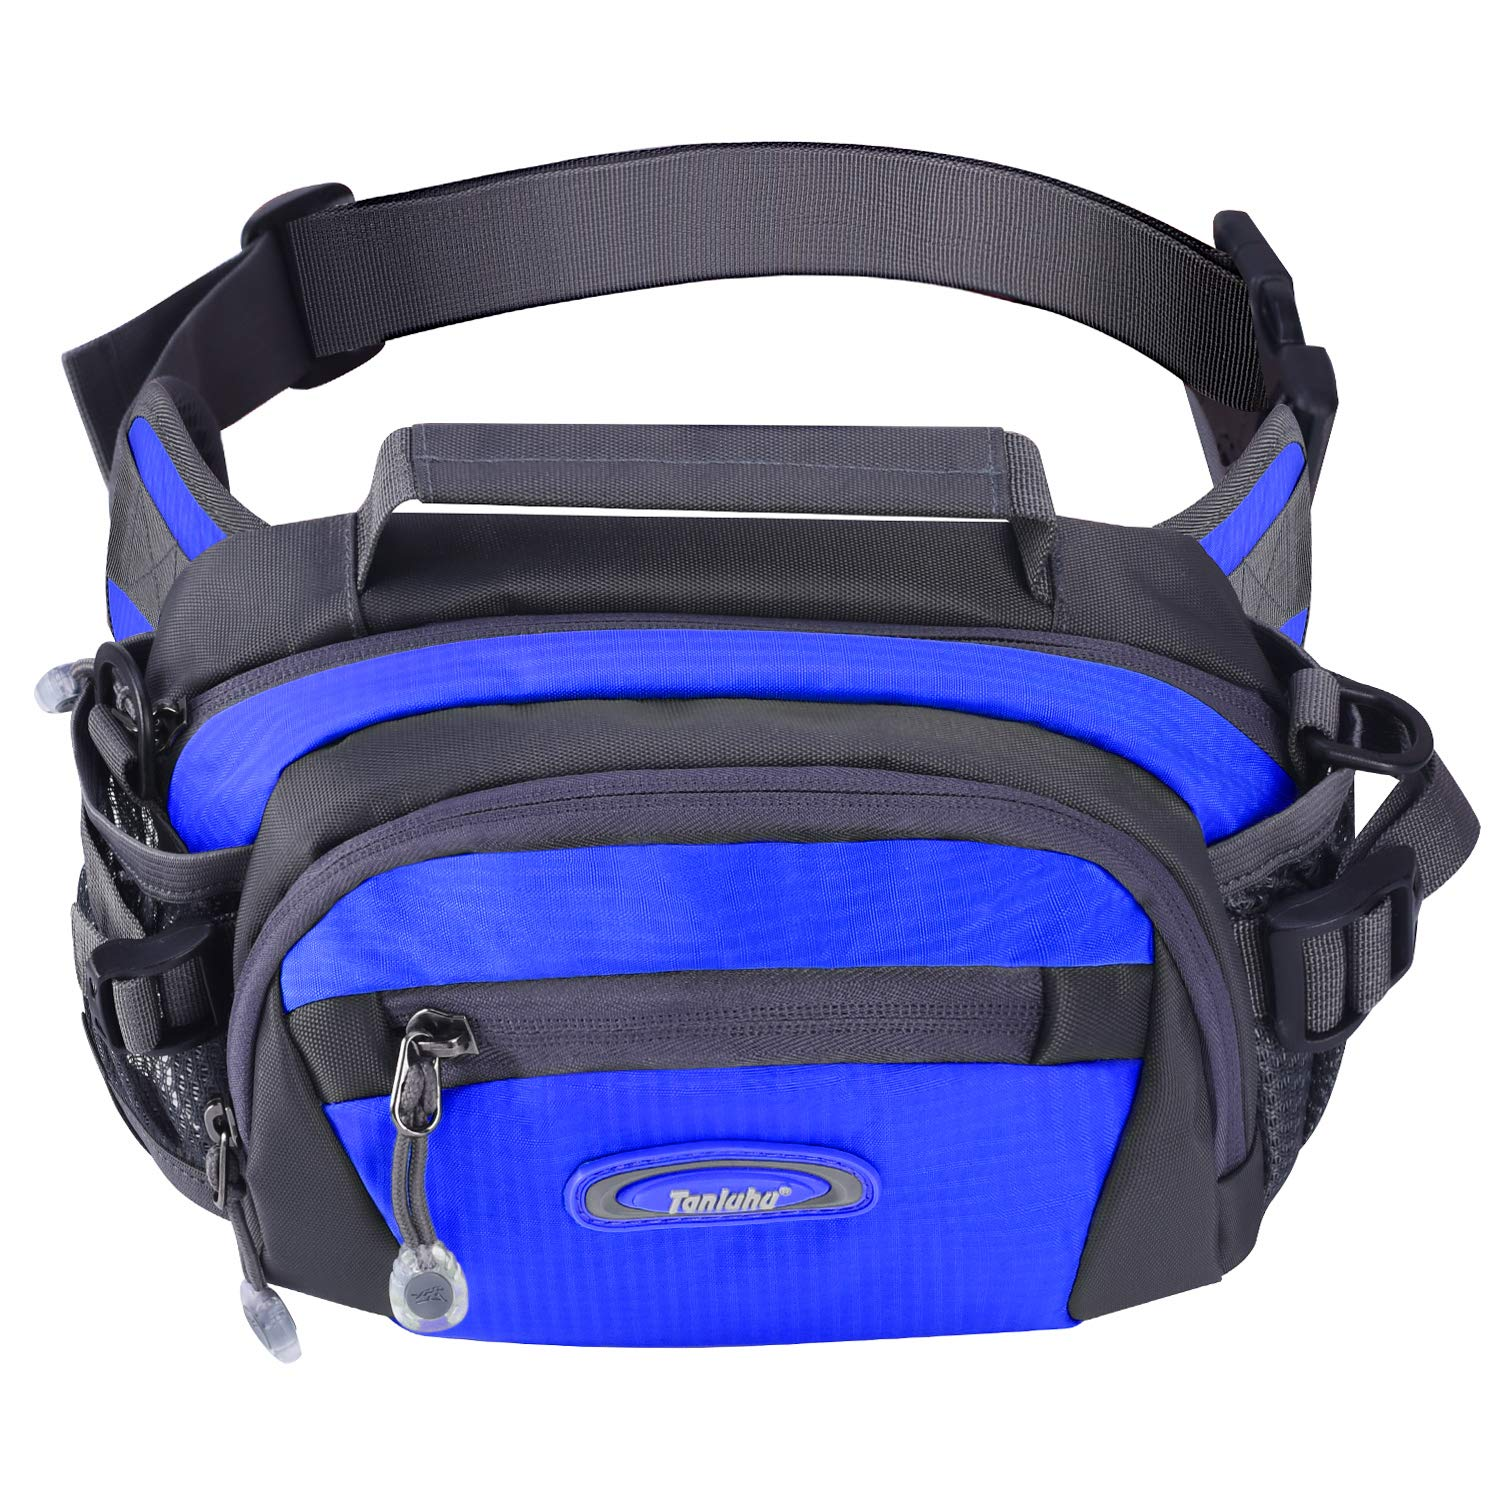 Best fanny pack ever!